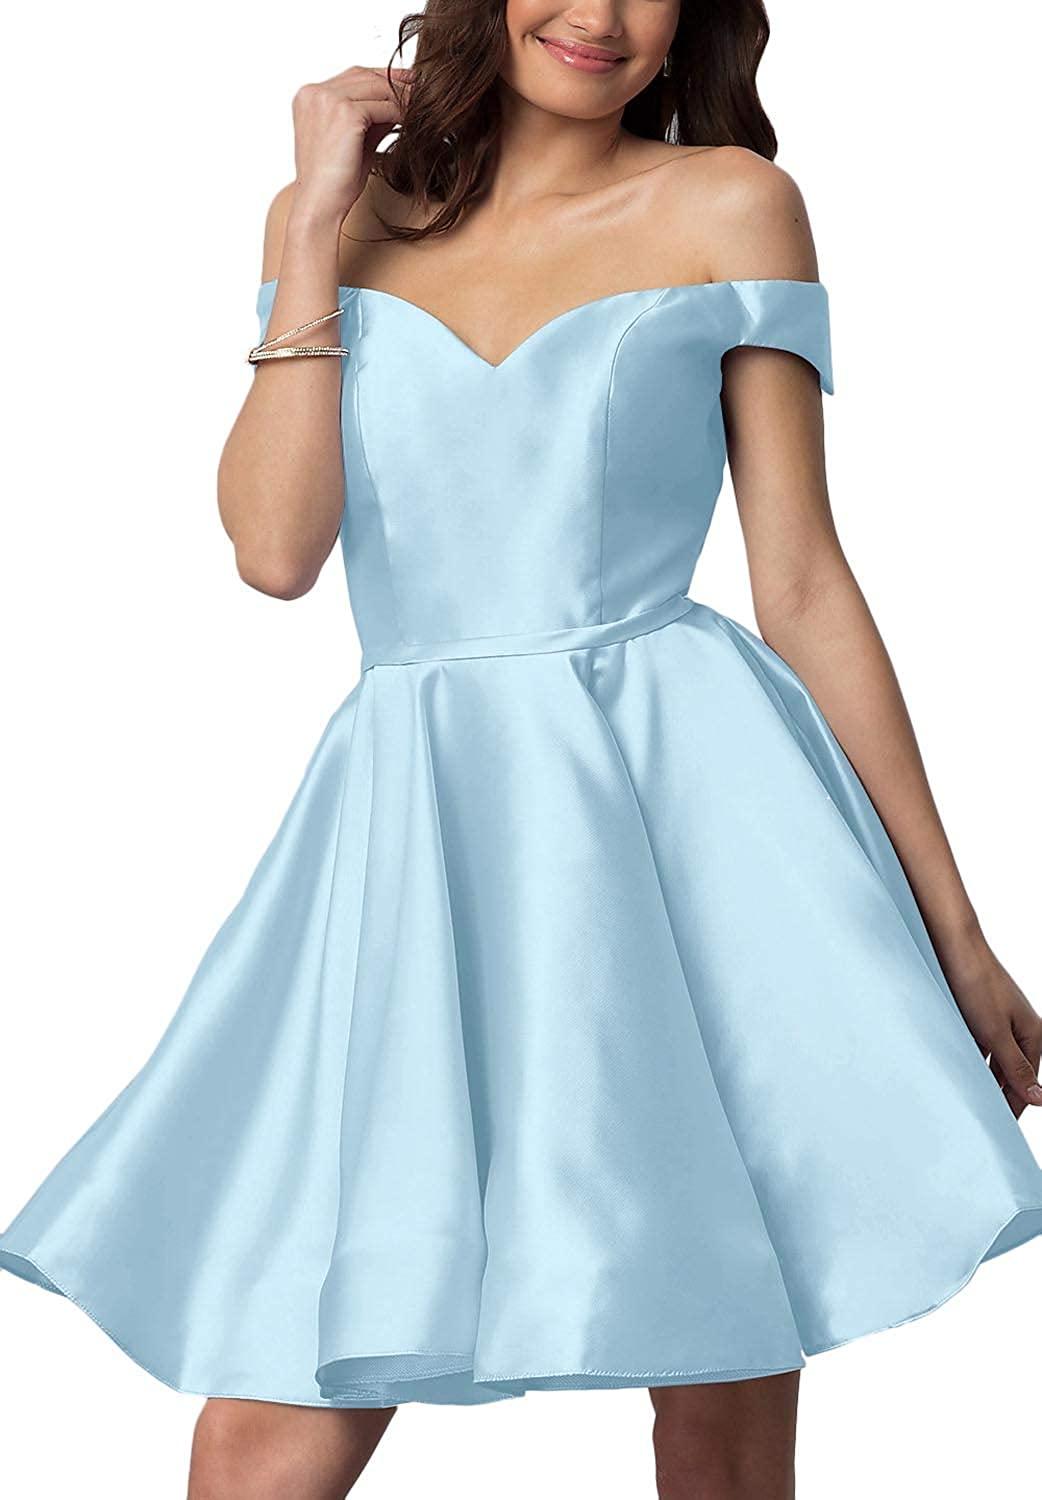 Ice bluee YnanLi Dress Short Off Shoulder Homecoming Dresses for Junior Cocktail Ball Gown with Pocket